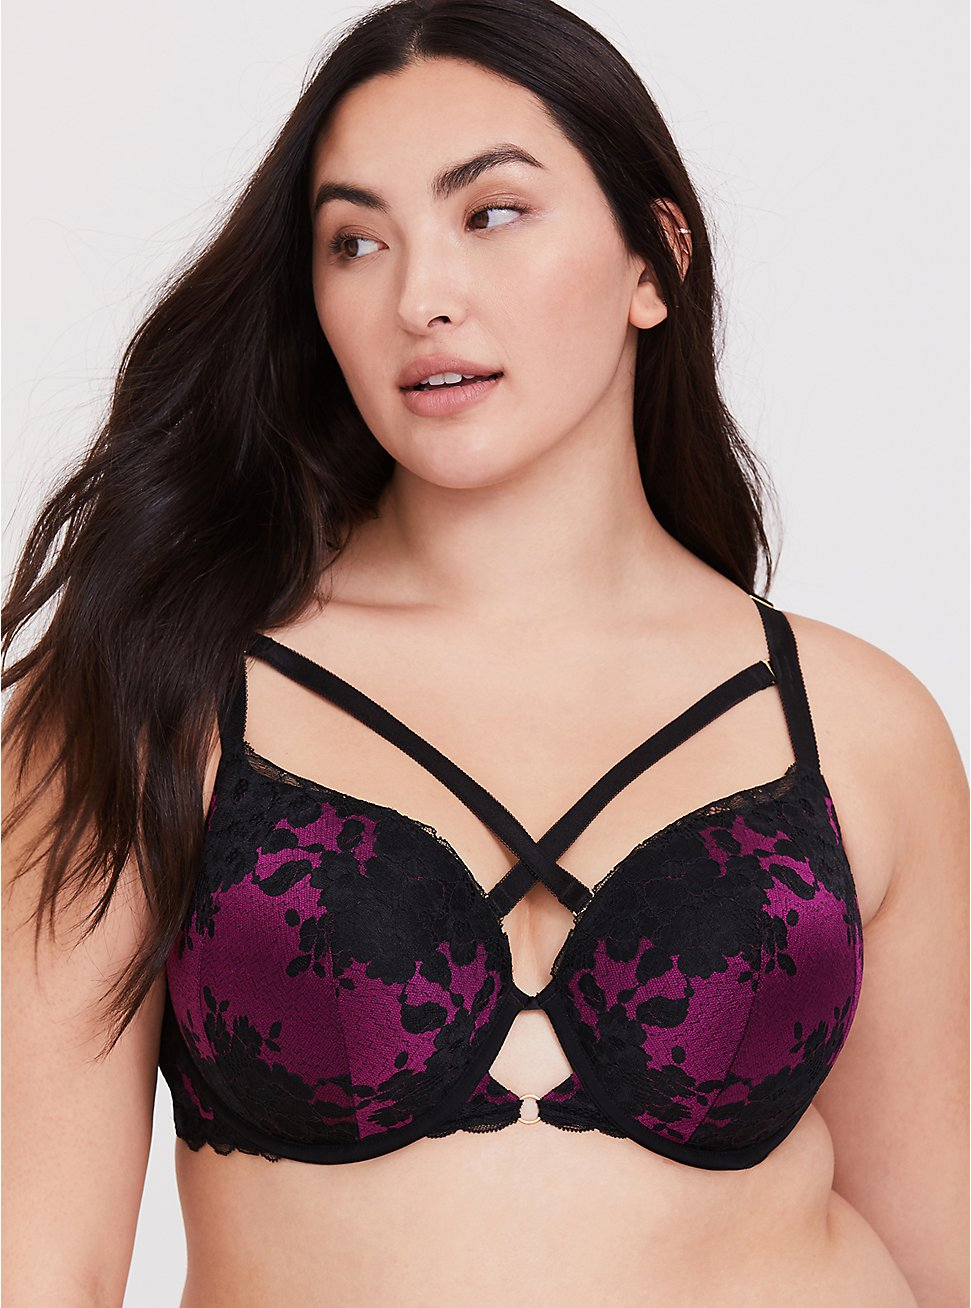 Berry Purple & Black Lace Strappy Push-Up T-Shirt Bra, , fitModel1-hires